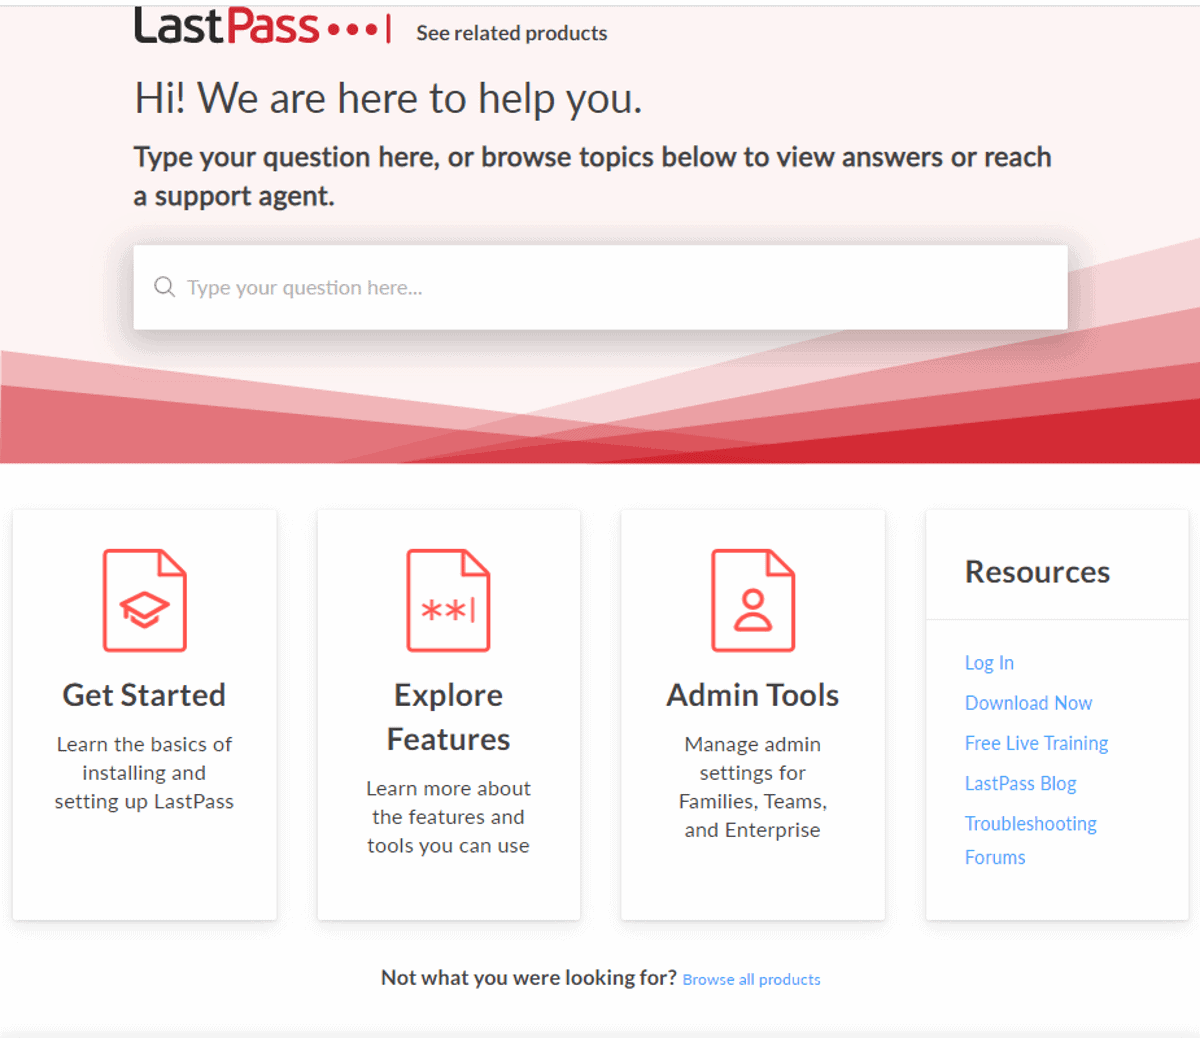 lastpass has no live support